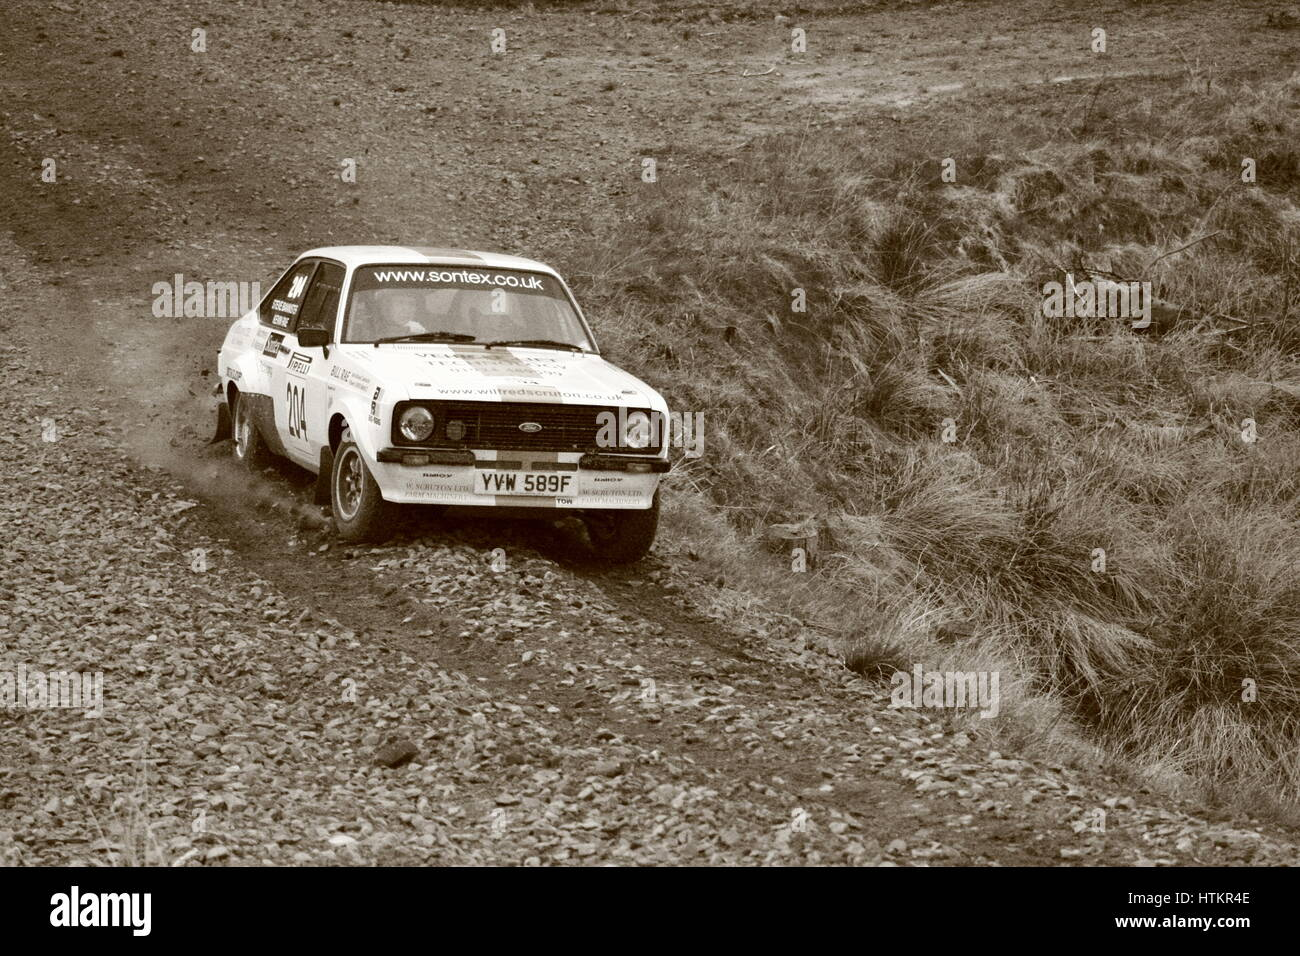 Rally car on special stage - Stock Image